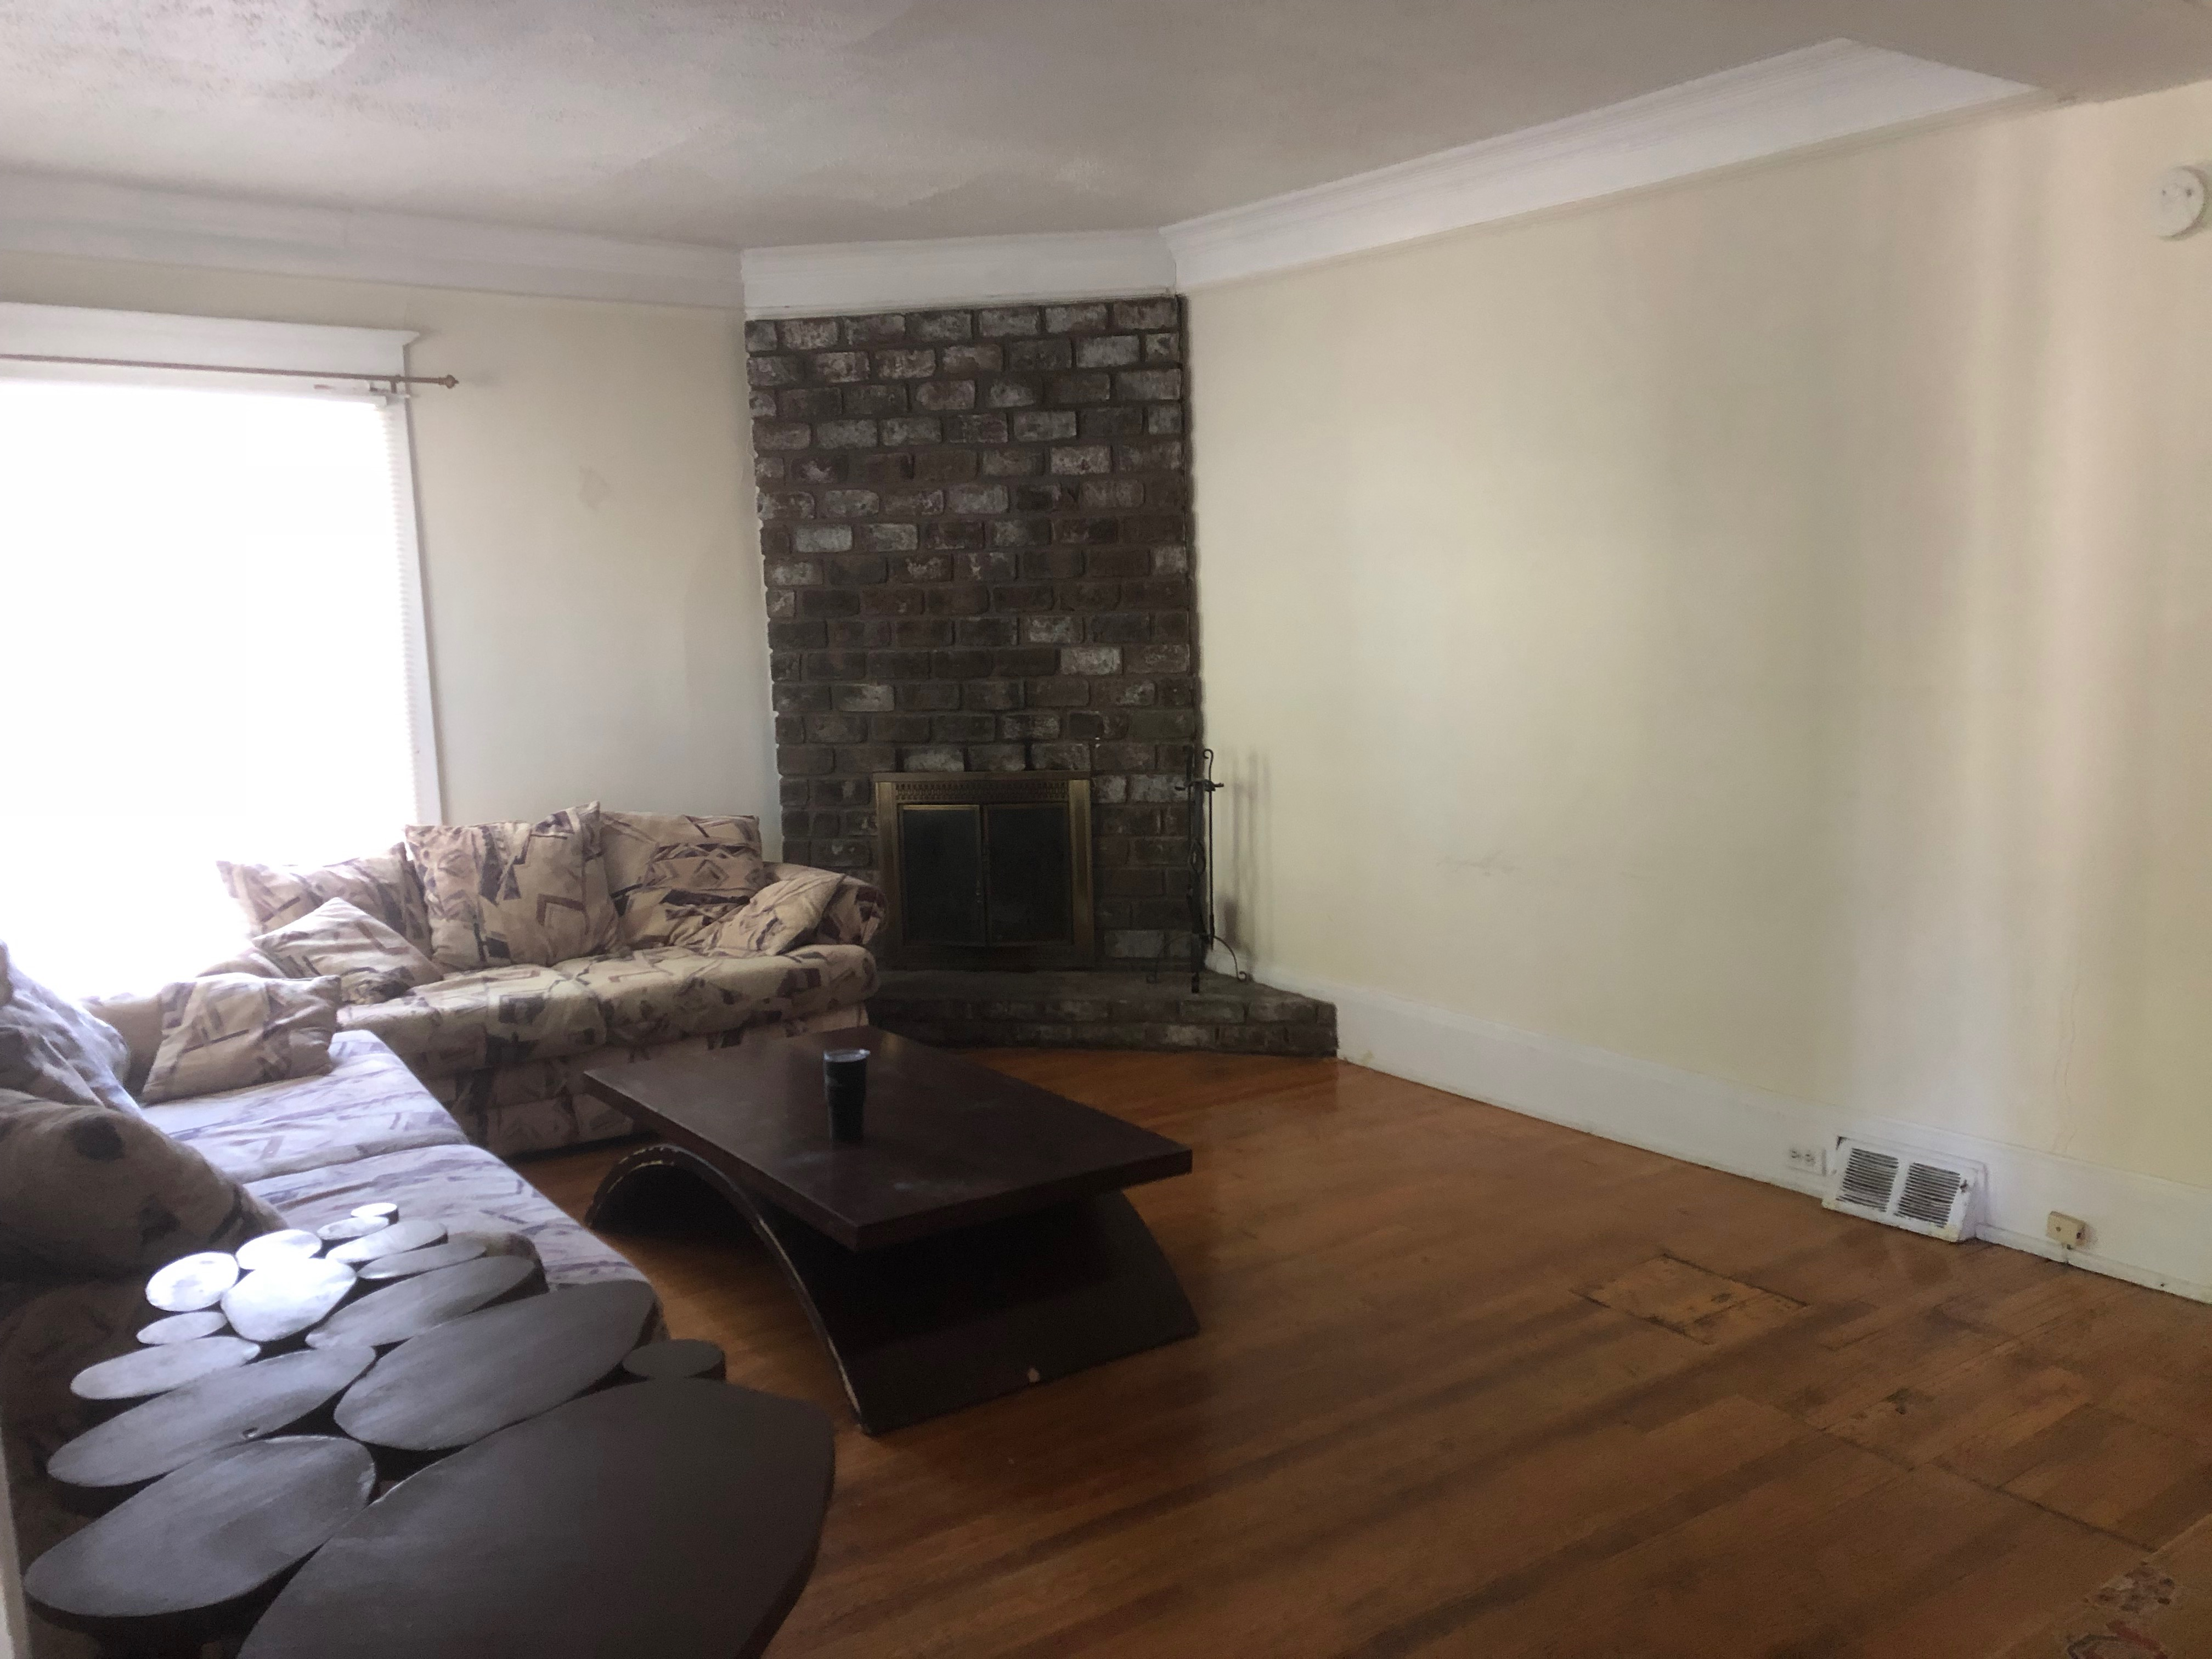 Apartments for Rent & Sale Listing | Heritage Hill Neighborhood